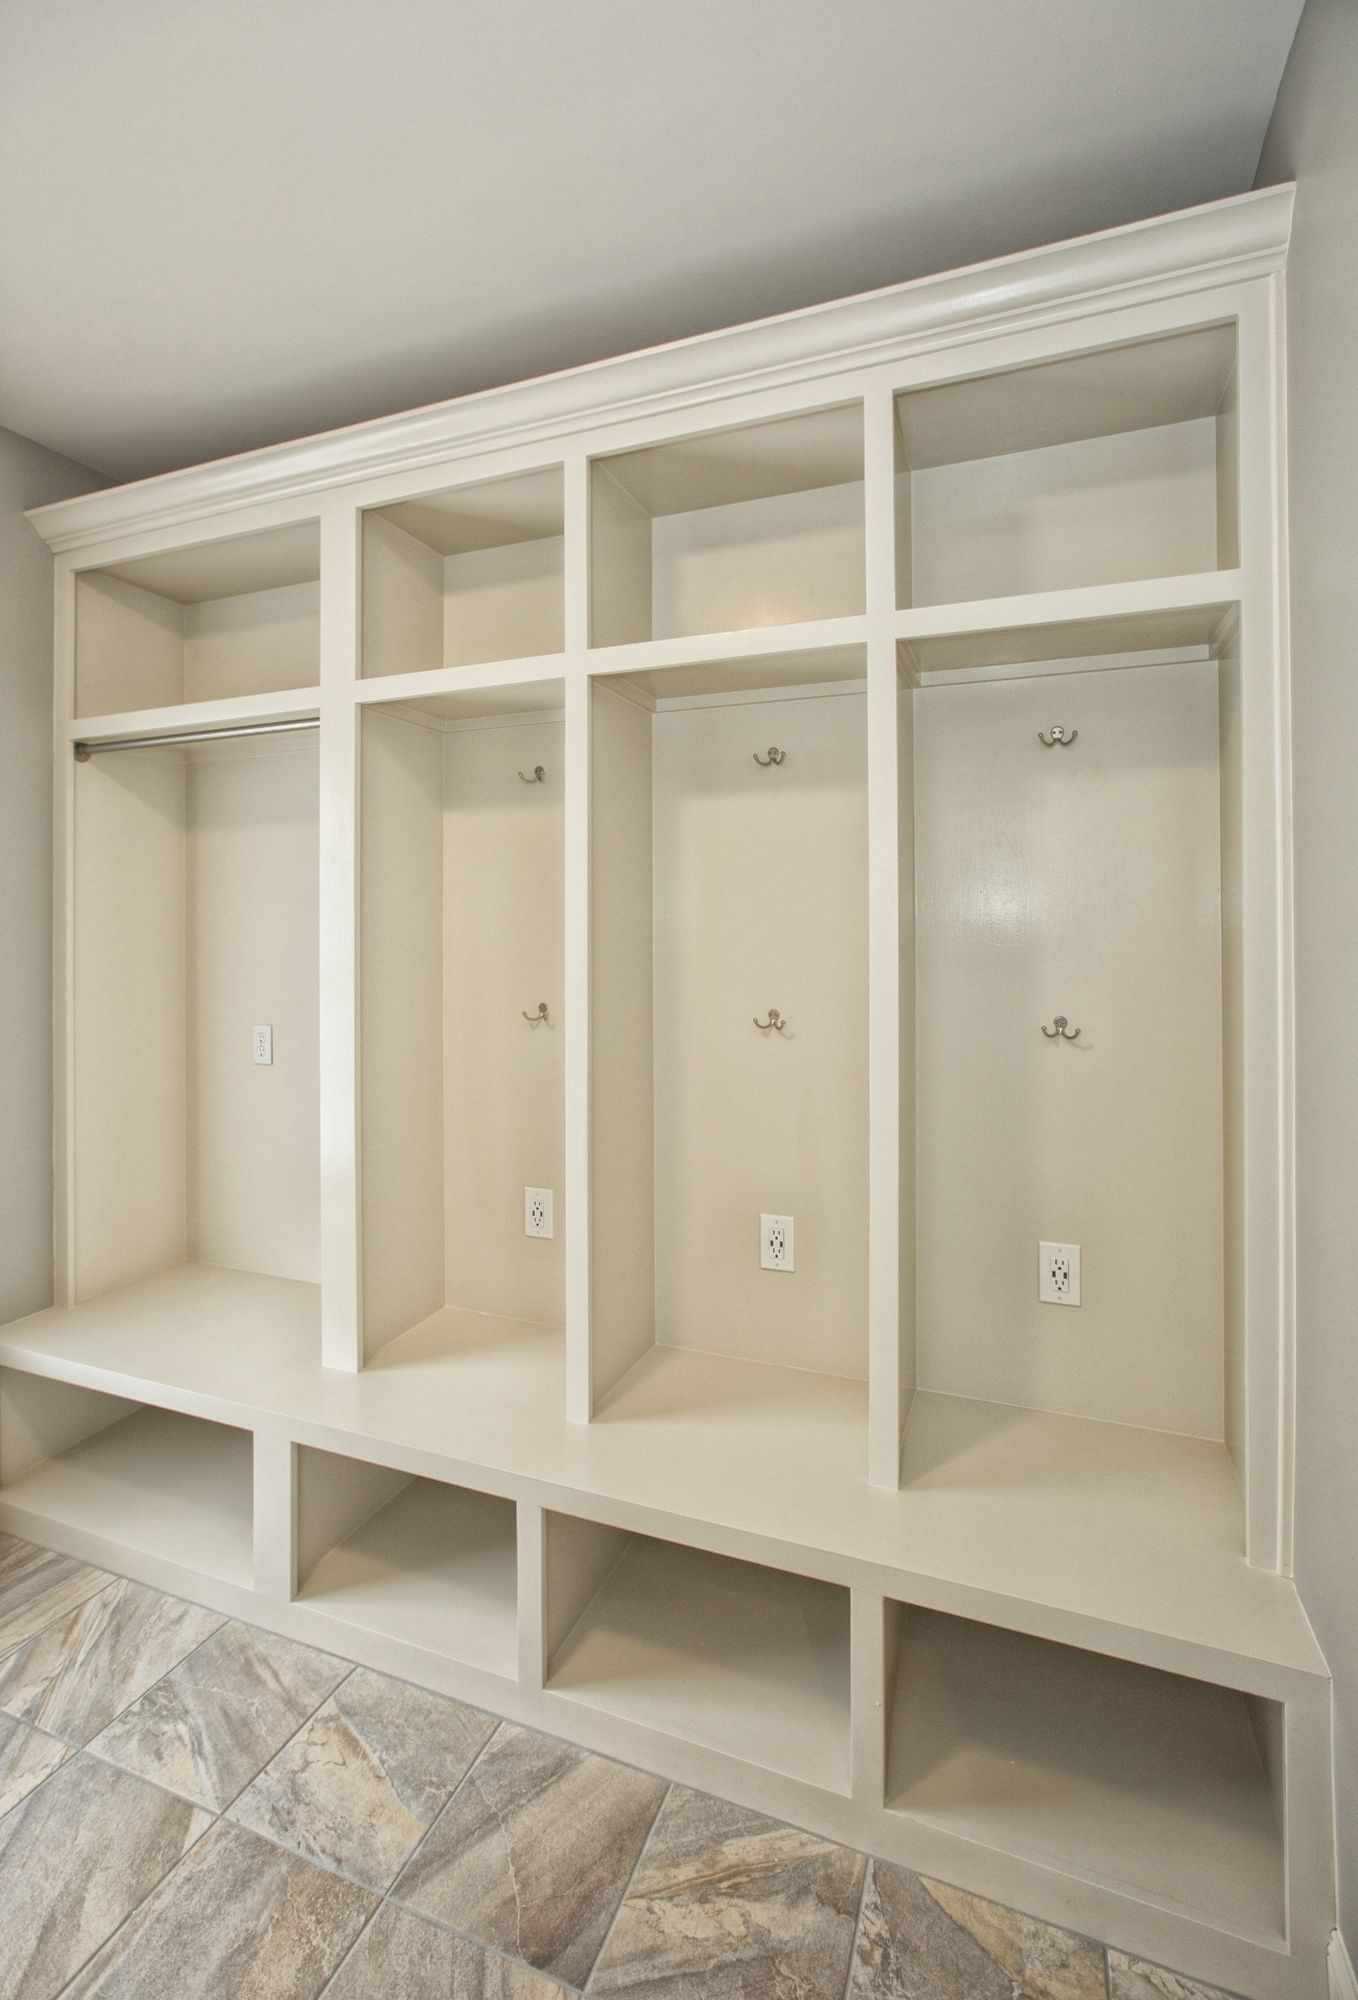 Mudroom Cubbies With Usb Charging Station In A Laundry Room Remodel Mud Room Storage Laundry Room Remodel Mudroom Cubbies